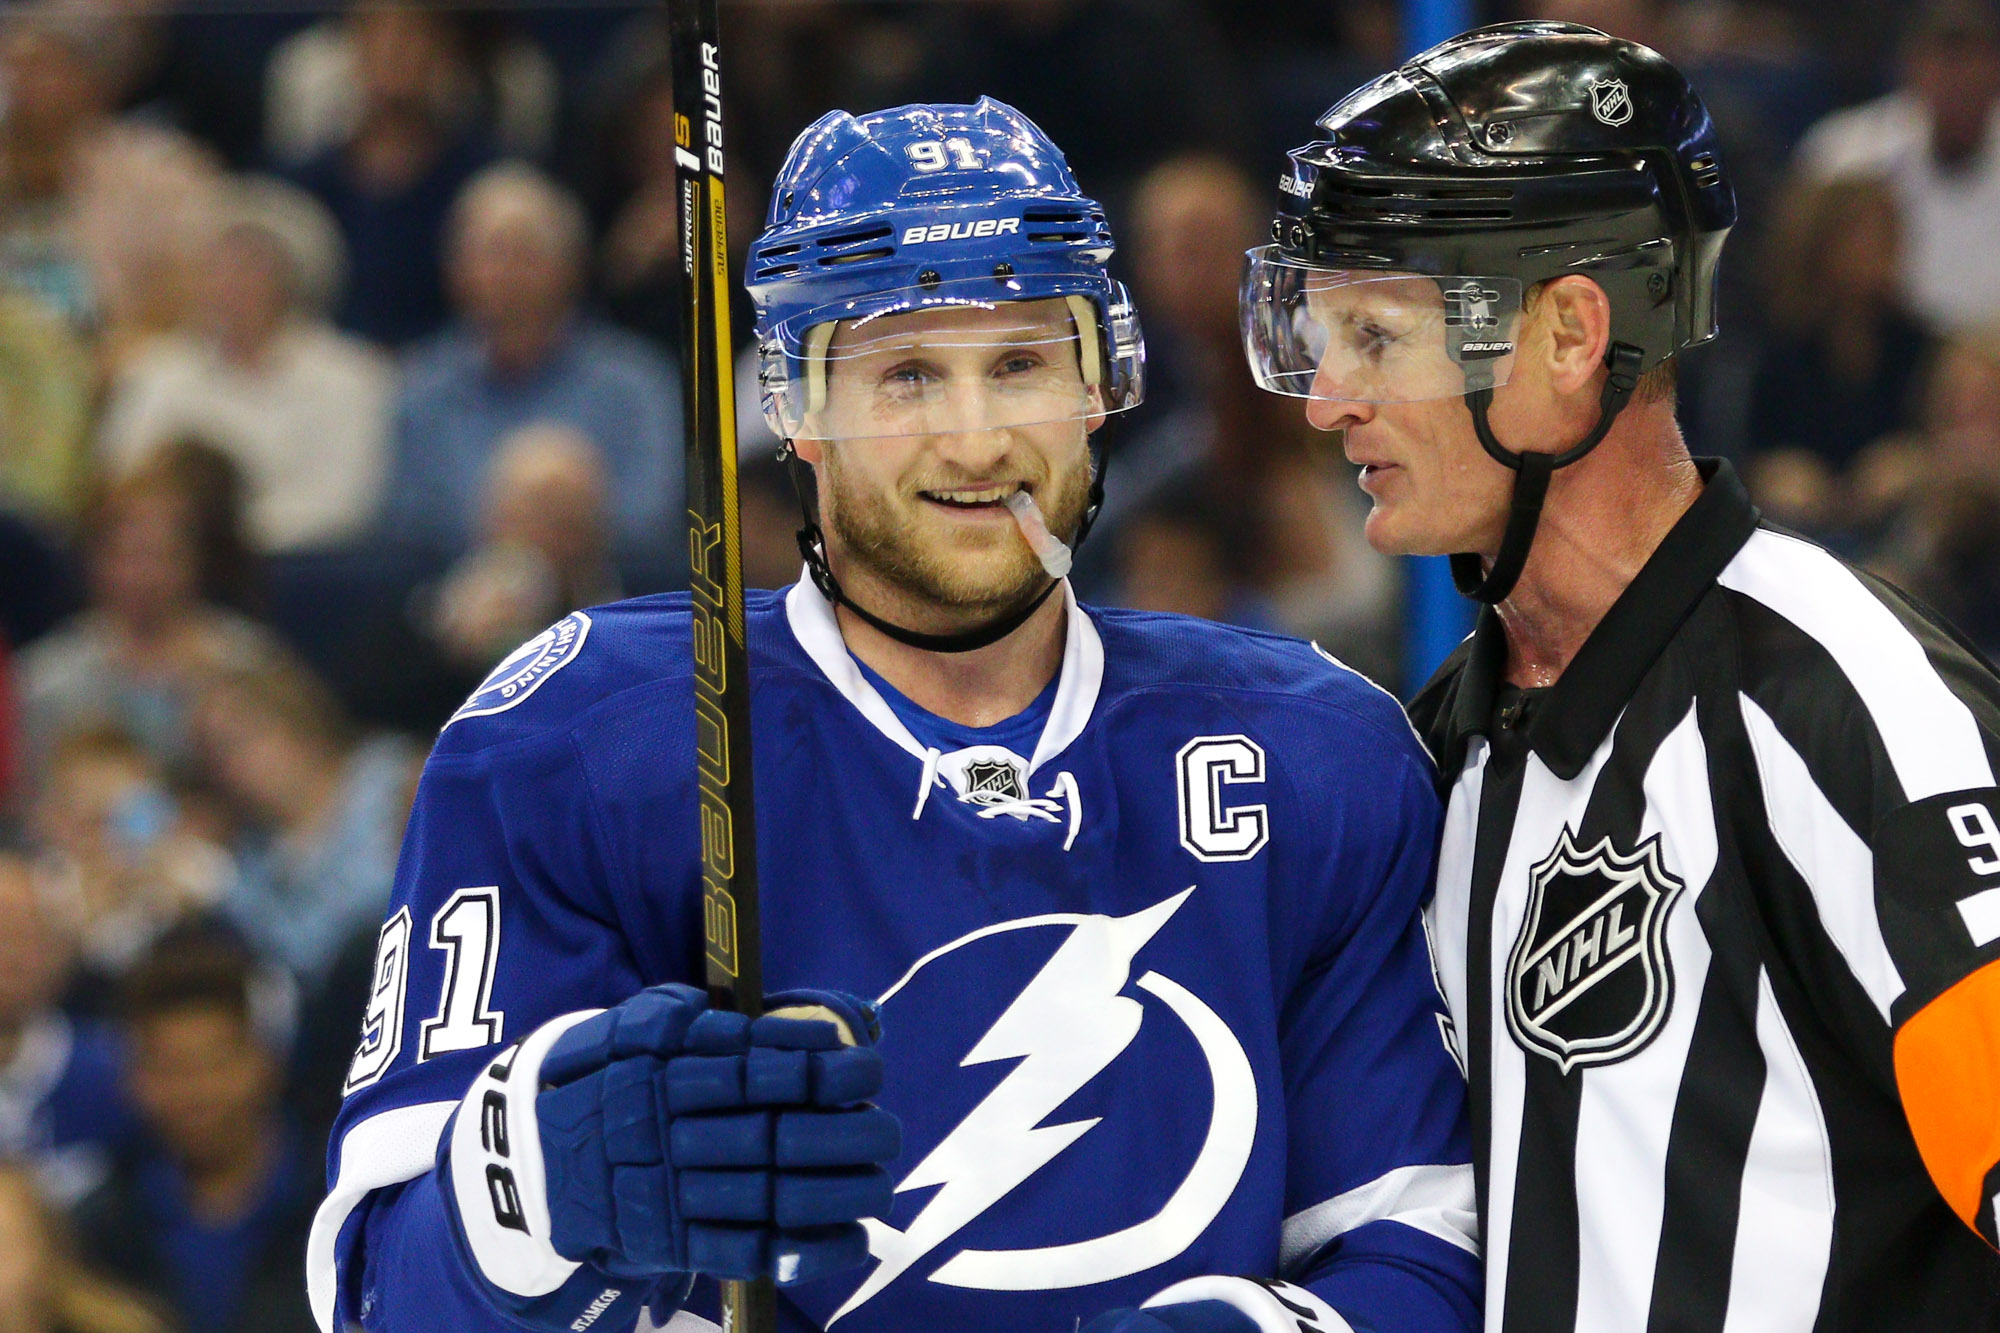 Lightning have learned to play without Stamkos./TRAVIS PENDERGRASS